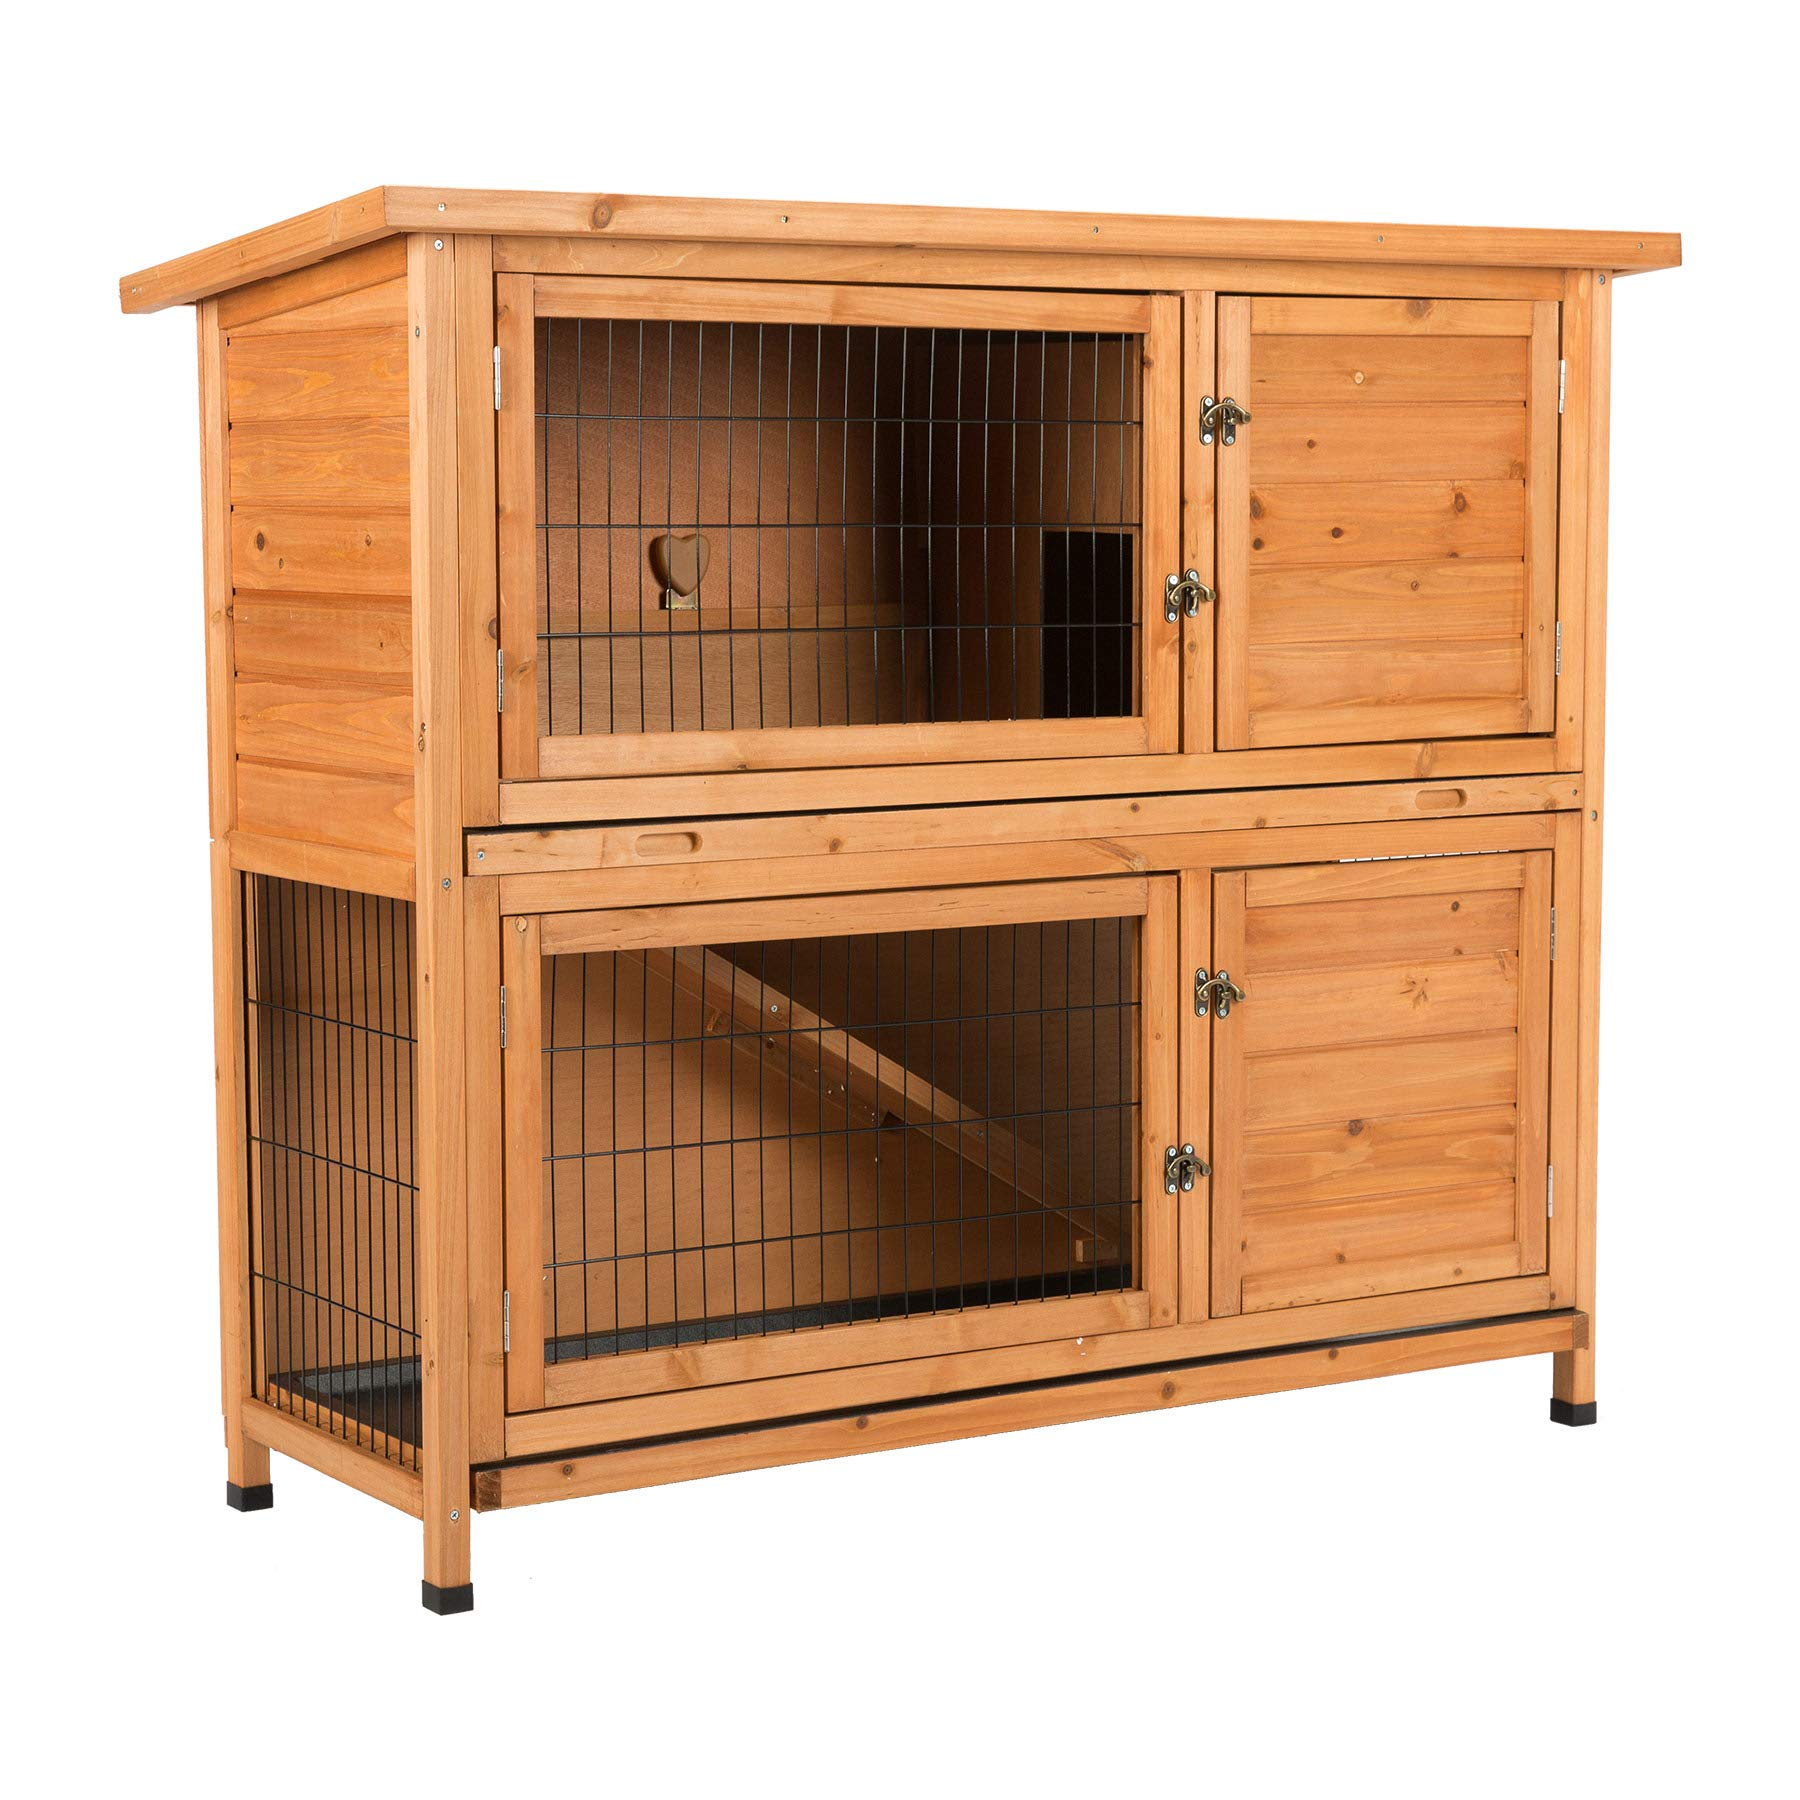 CO-Z 2 Story Outdoor Wooden Bunny Cage Rabbit Hutch Guinea Pig House in Nature Color with Ladder for Small Animals by CO-Z (Image #9)